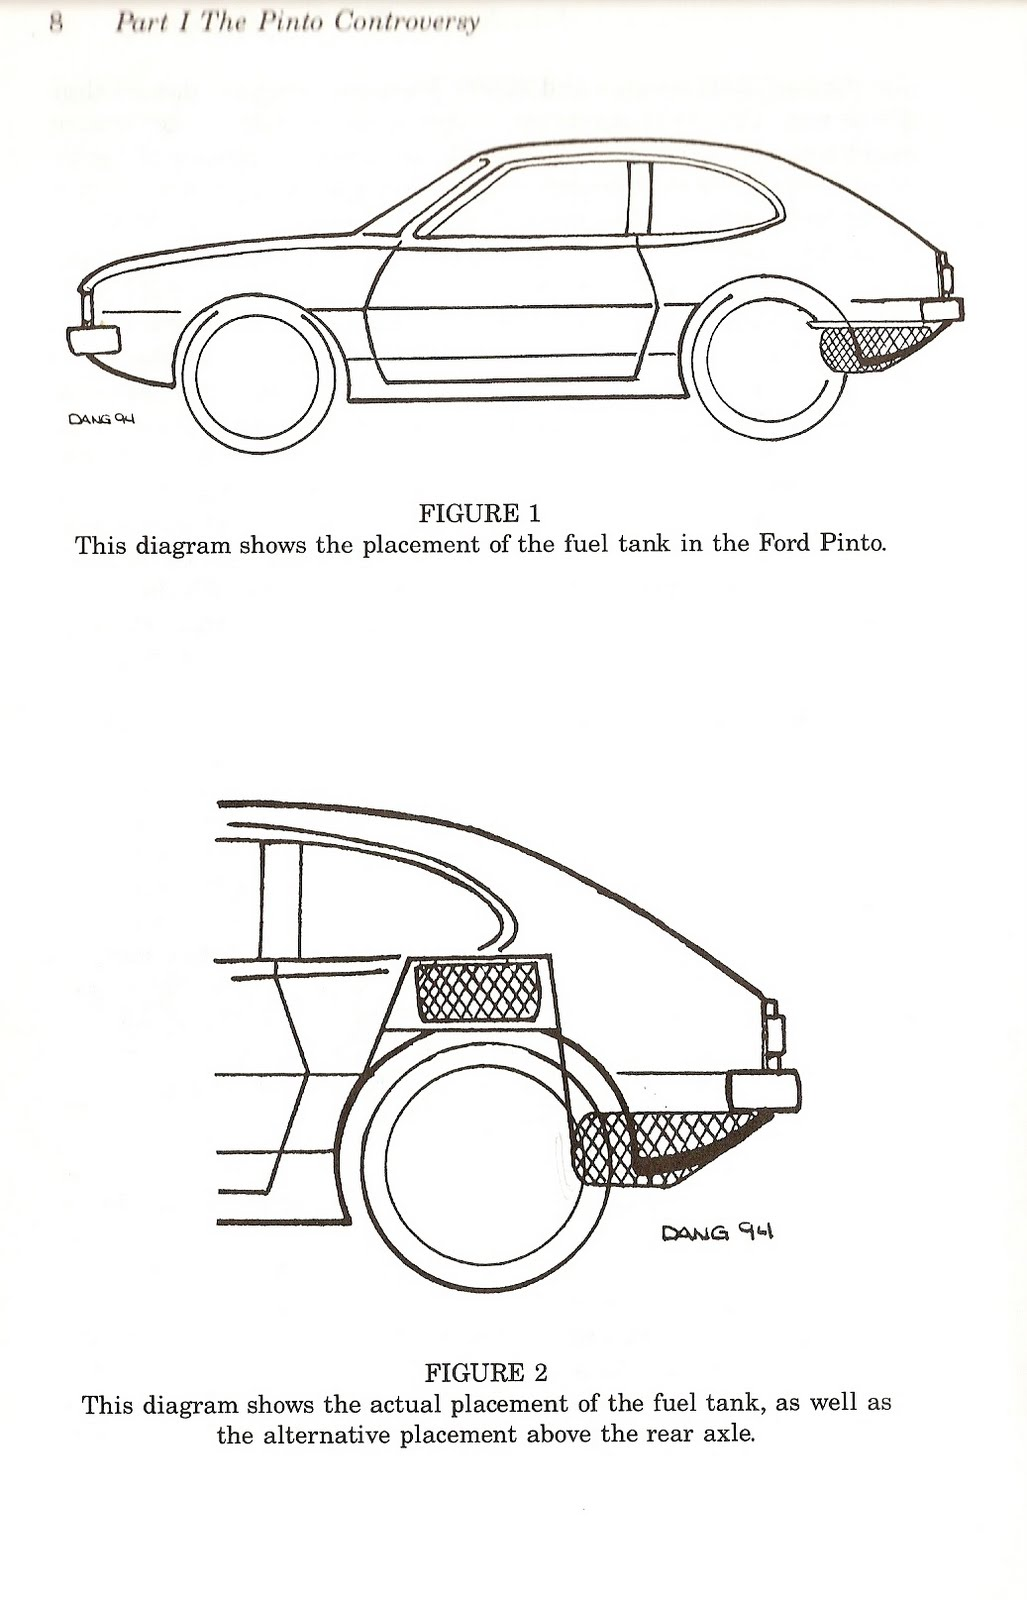 The case of the Ford Pinto?